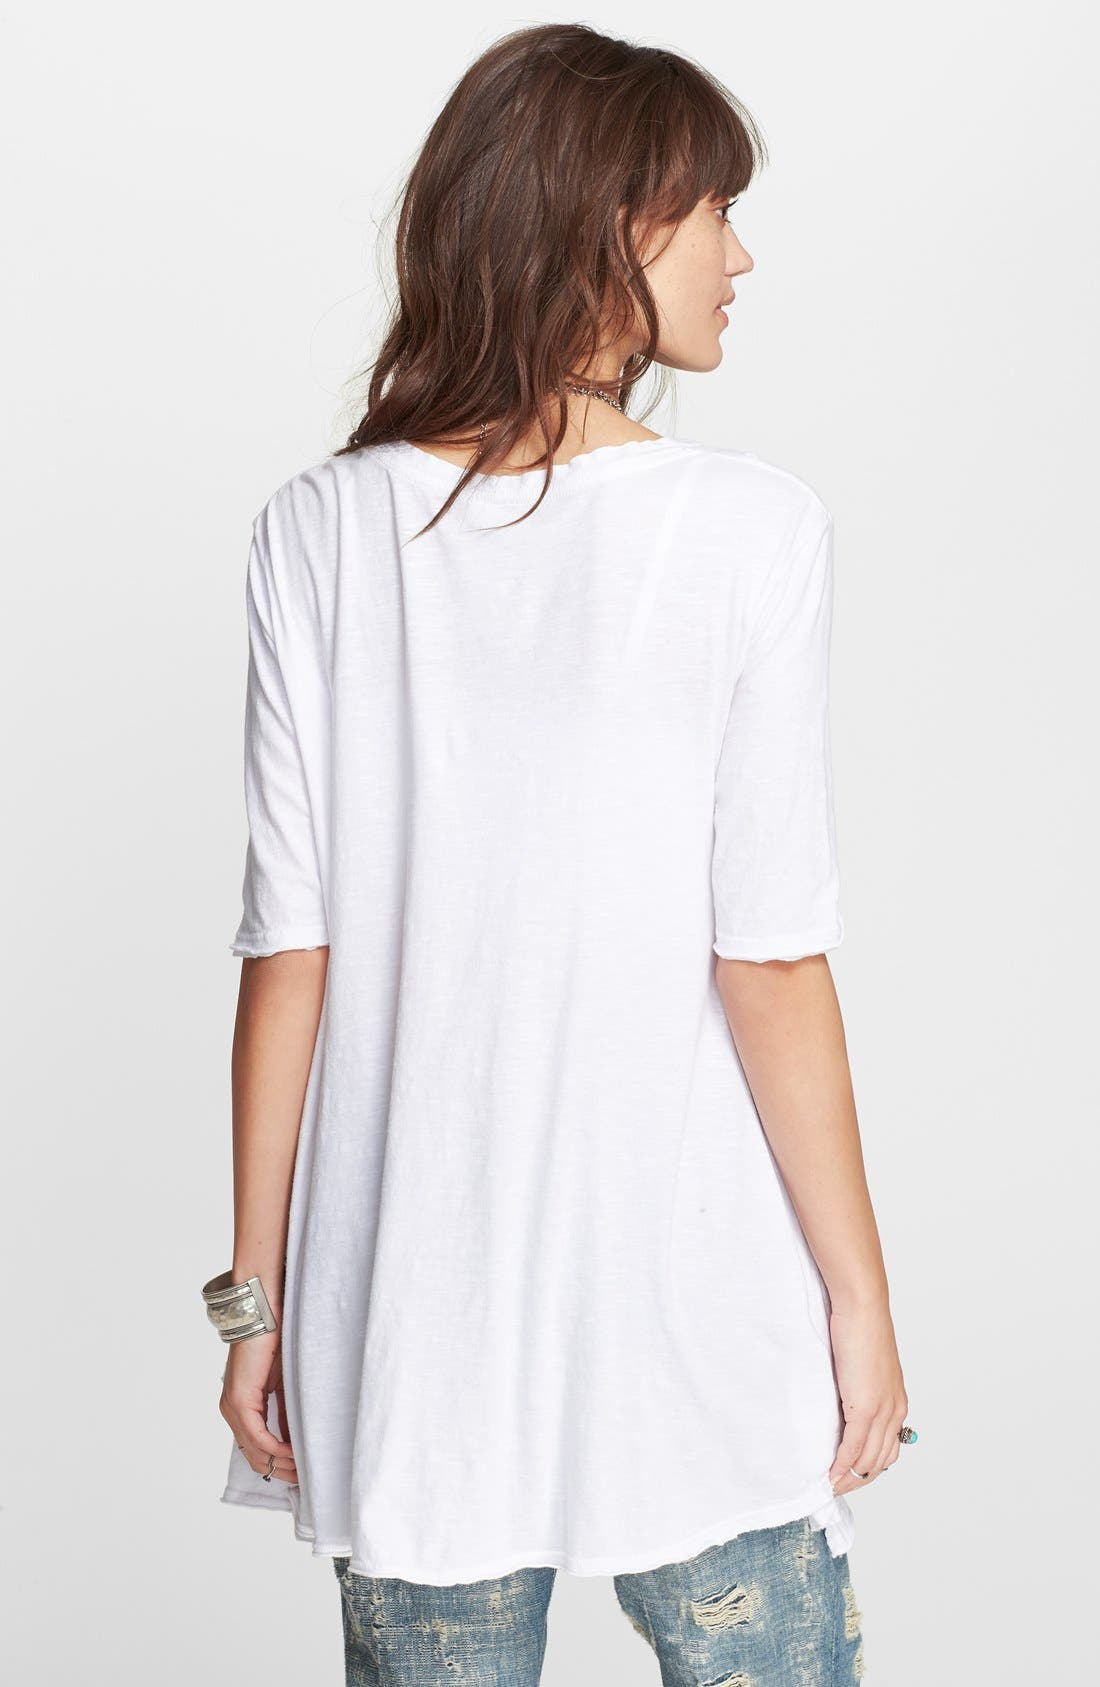 FREE PEOPLE,                             'Melrose' Tee,                             Alternate thumbnail 2, color,                             100